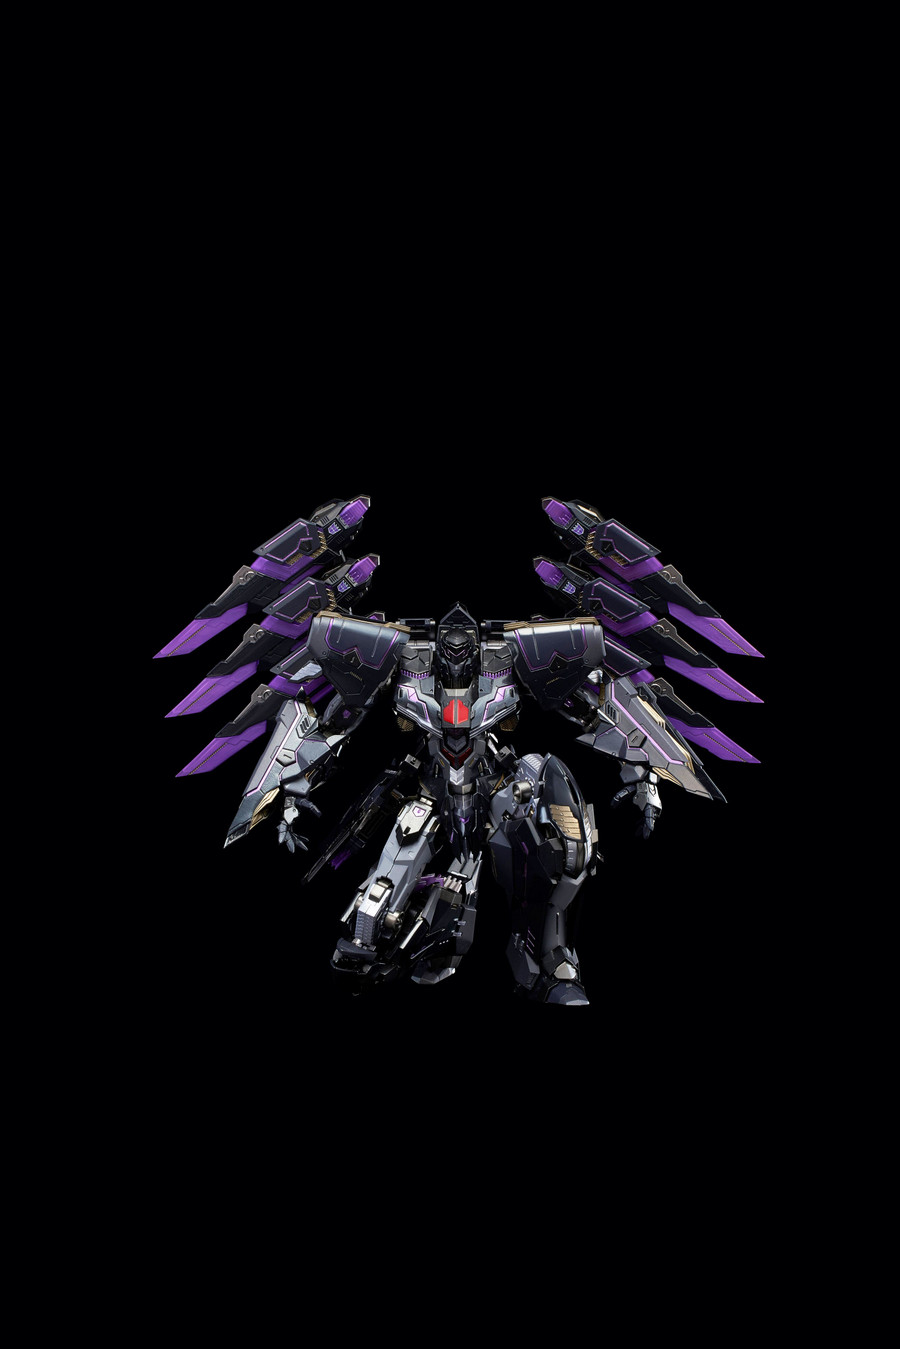 Flame Toys - Transformers Megatron (Deposit Required)